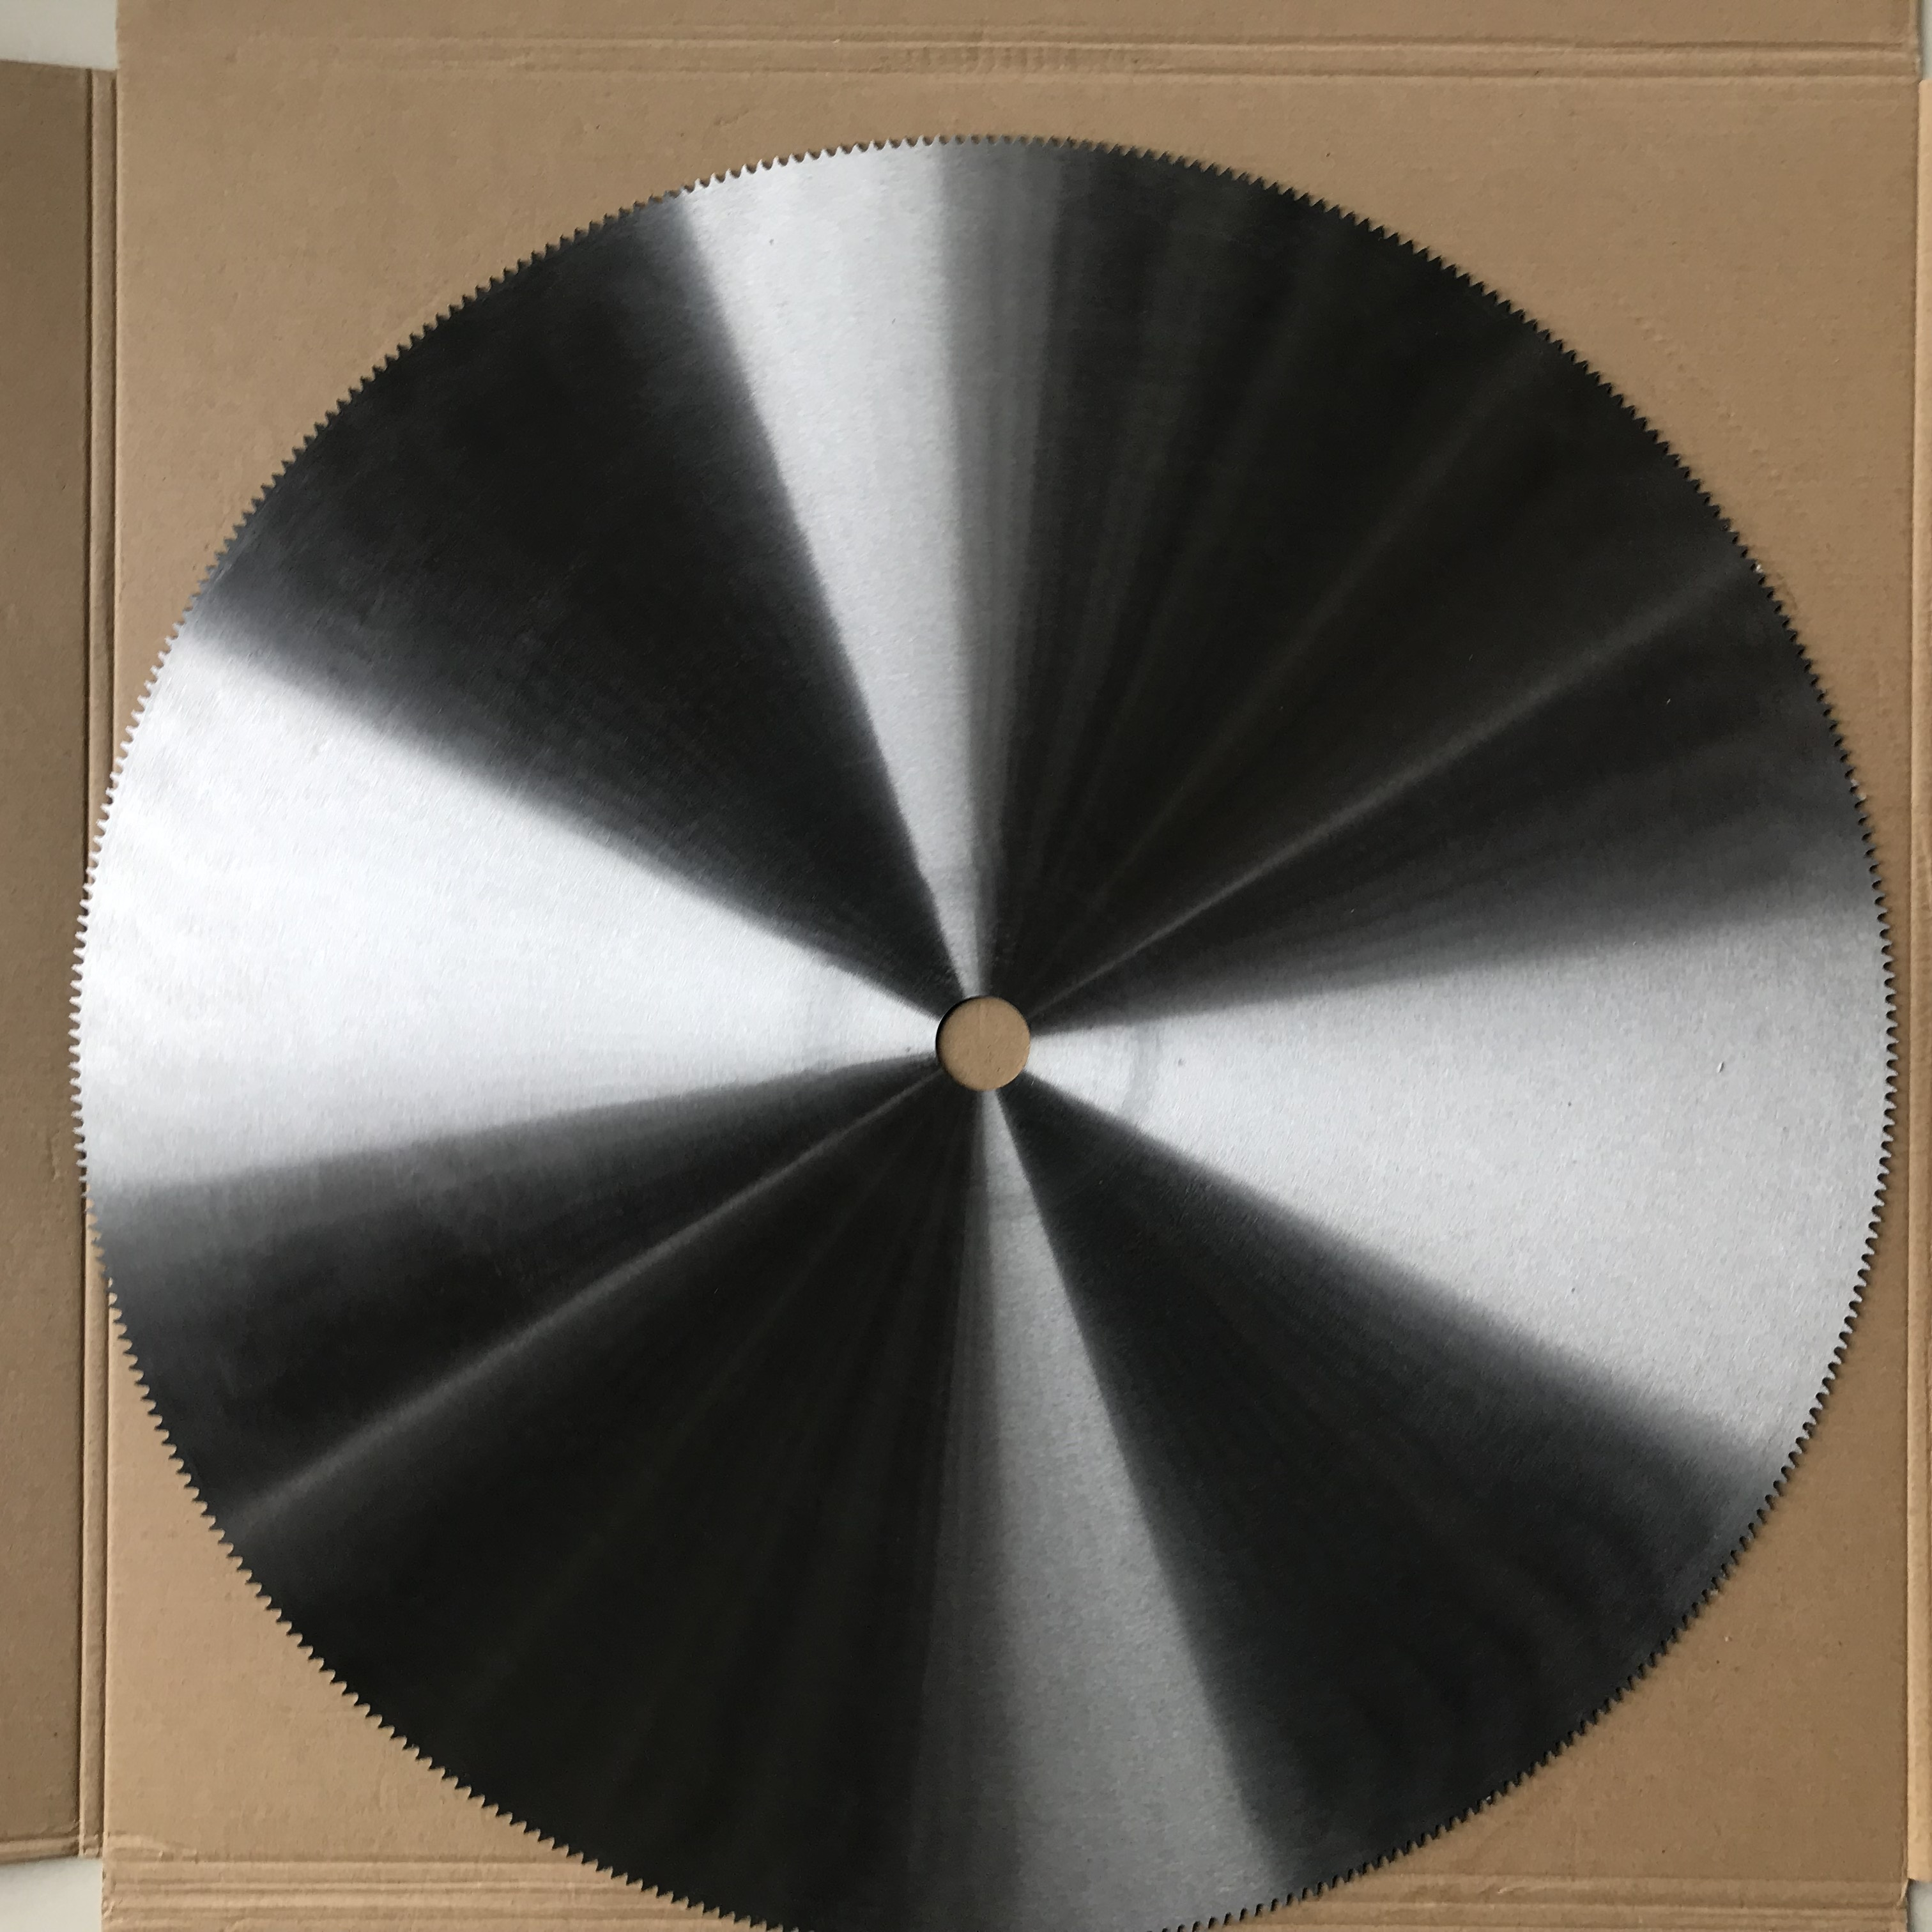 600mm Circular <strong>friction</strong> saw blades HSS saw blade for <strong>PVC</strong> cutting and pipes and structural shapes